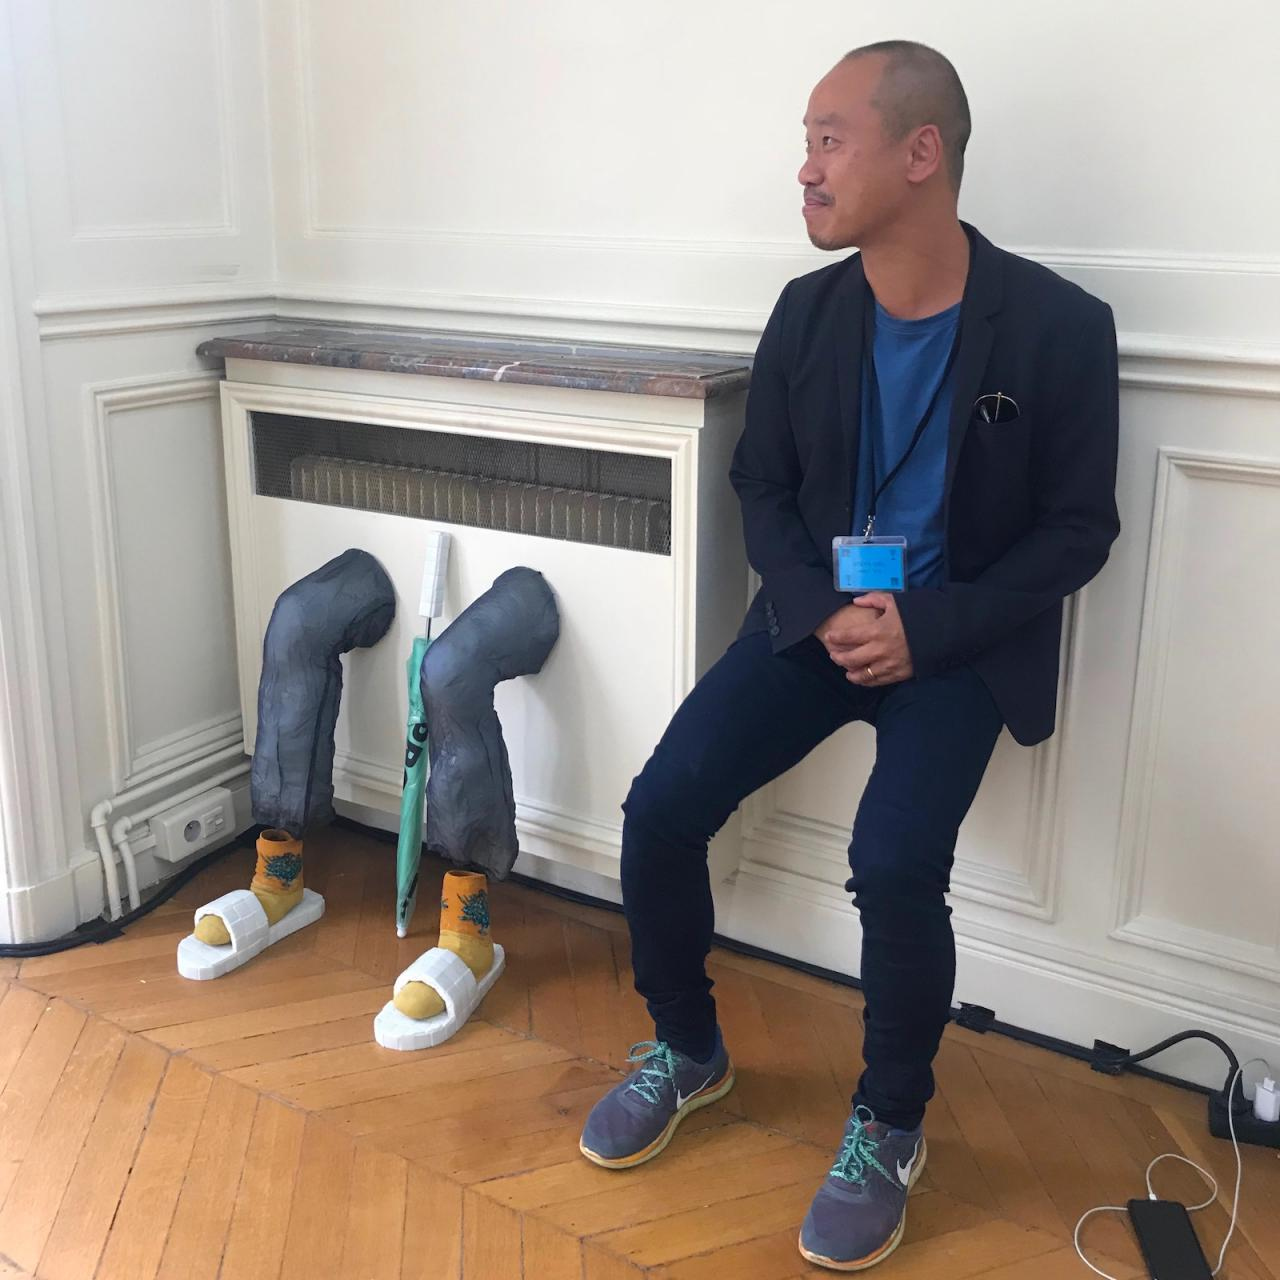 Gallerist Joseph Tang showing empathy for a sculpture by Adam Cruces & Louisa Gagliardi